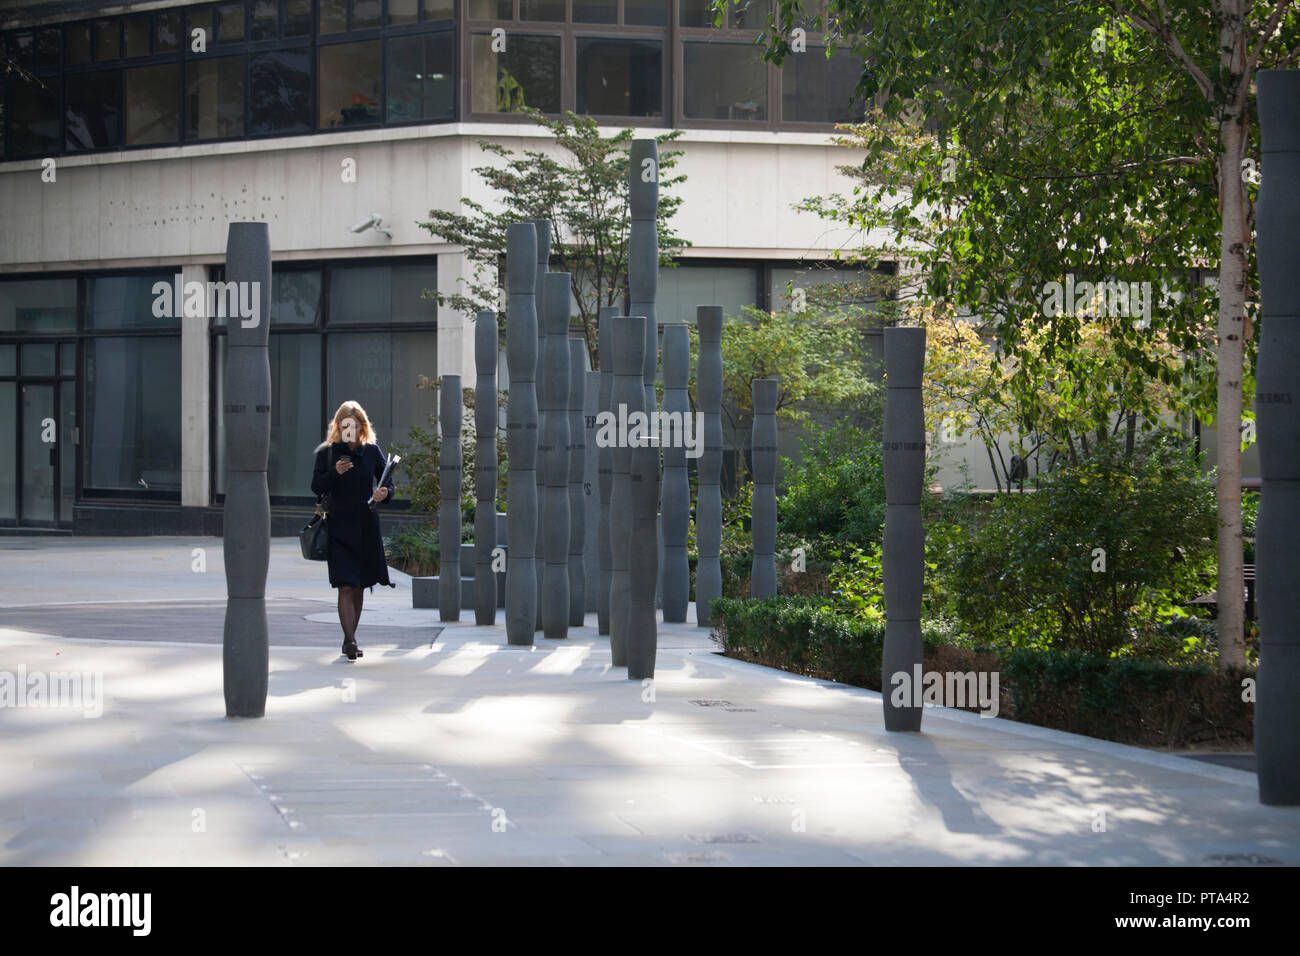 Gilt of Cain sculpture was collaboration between sculptor Michael Visocchi and poet Lemn Sissay, Fen  Court, City of London - Stock Image